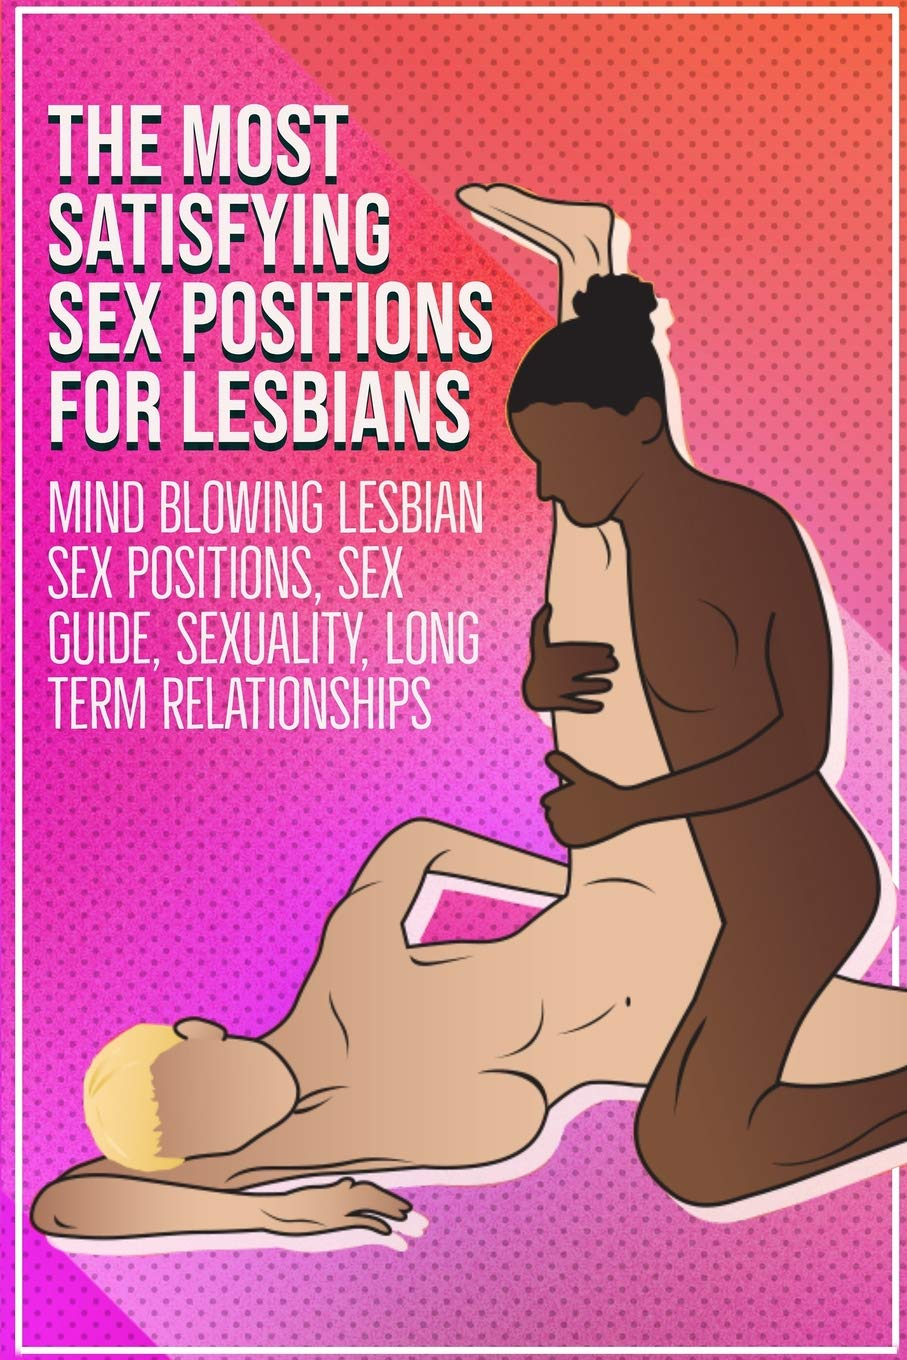 The Most Satisfying Sex Positions For Lesbians:: Mind Blowing Lesbian Sex  Positions, Sex Guide, Sexuality, Long Term Relationships Paperback –  February 16, ...